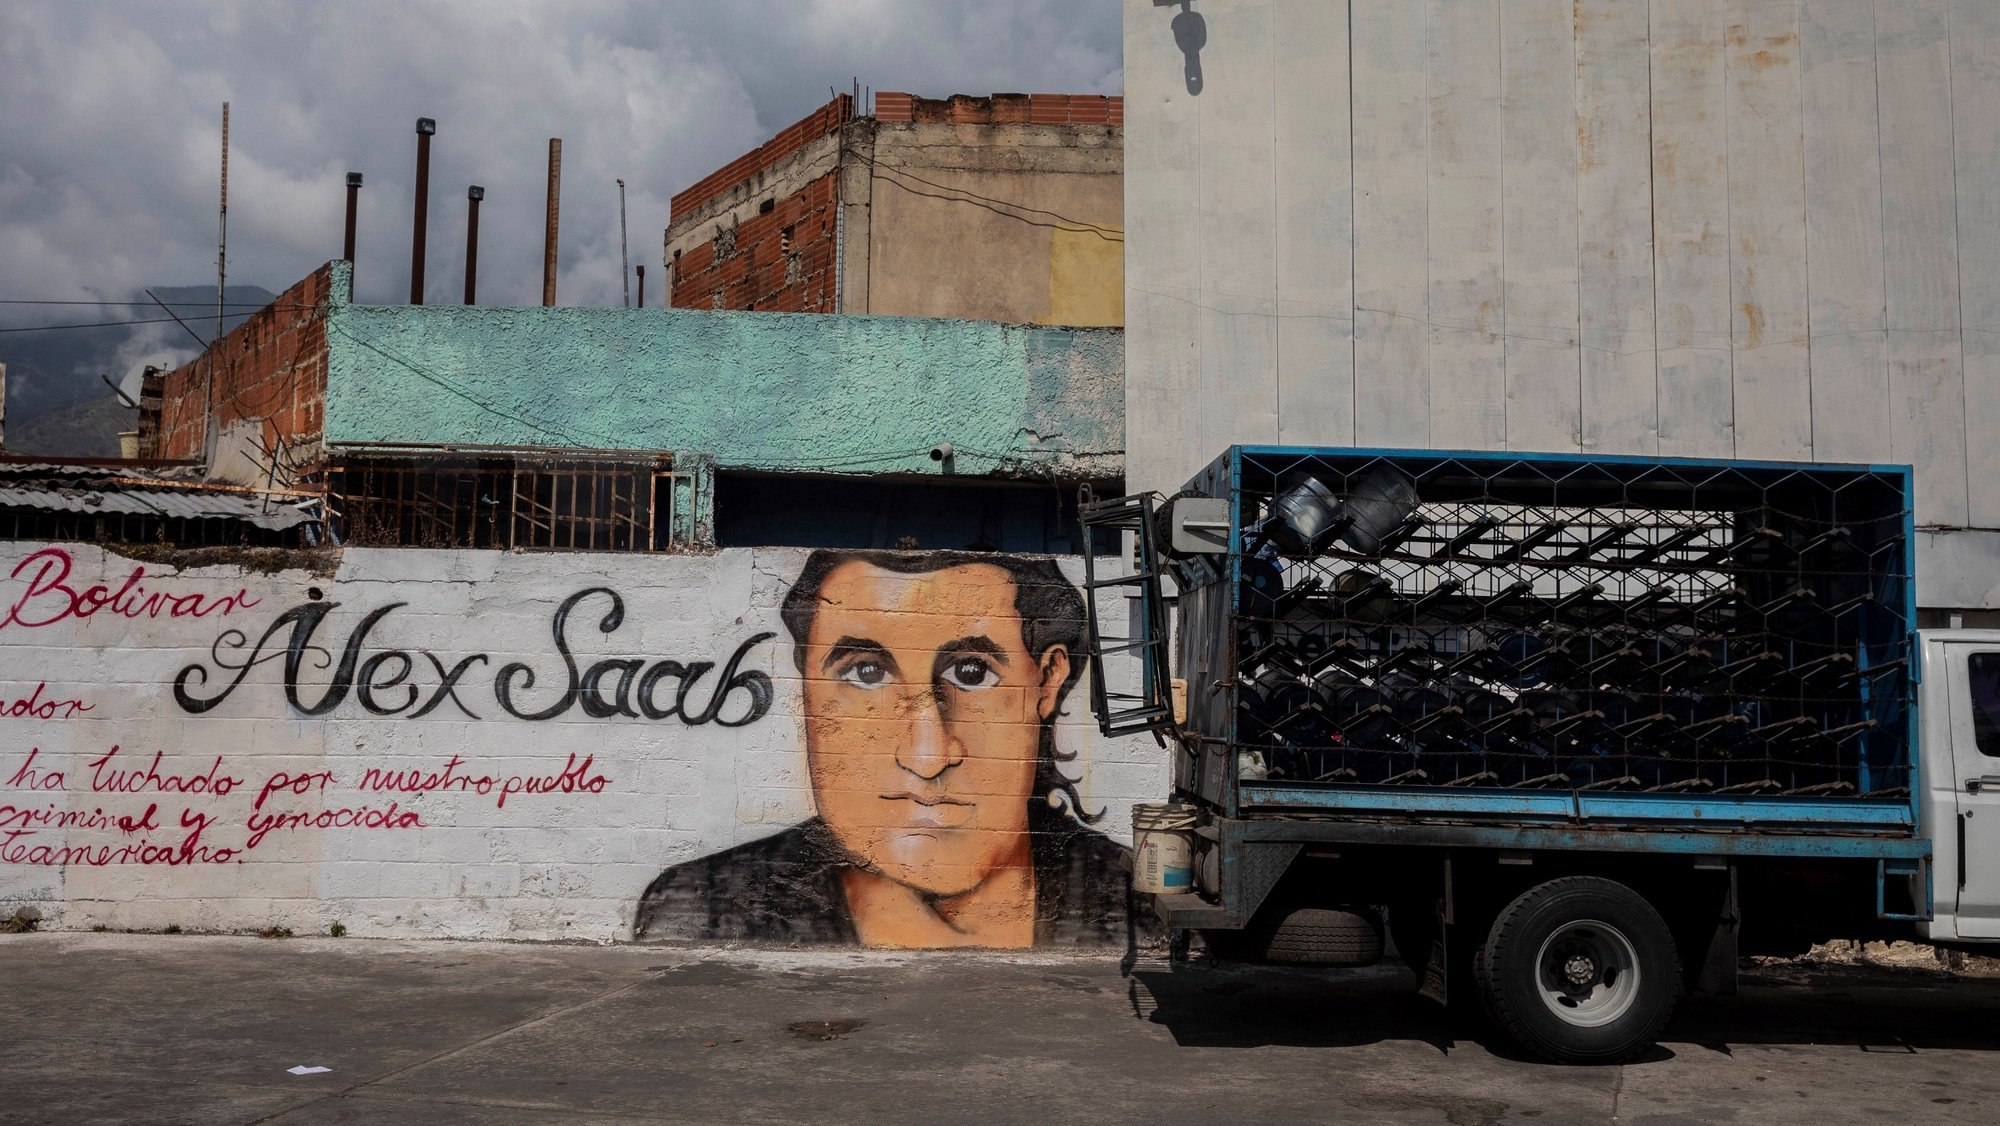 epa09030459 A small truck passes by a graffiti with the image of Alex Saab's face in Caracas, Venezuela, 22 February 2021. Chavista supporters have painted murals in the Venezuelan capital to show their support and request the release of Alex Saab, a Colombian businessman detained in Cape Verde and whom the United States is asking for extradition by accusing him of being a front man for the president of Venezuela, Nicolas Maduro.  EPA/Rayner Pena